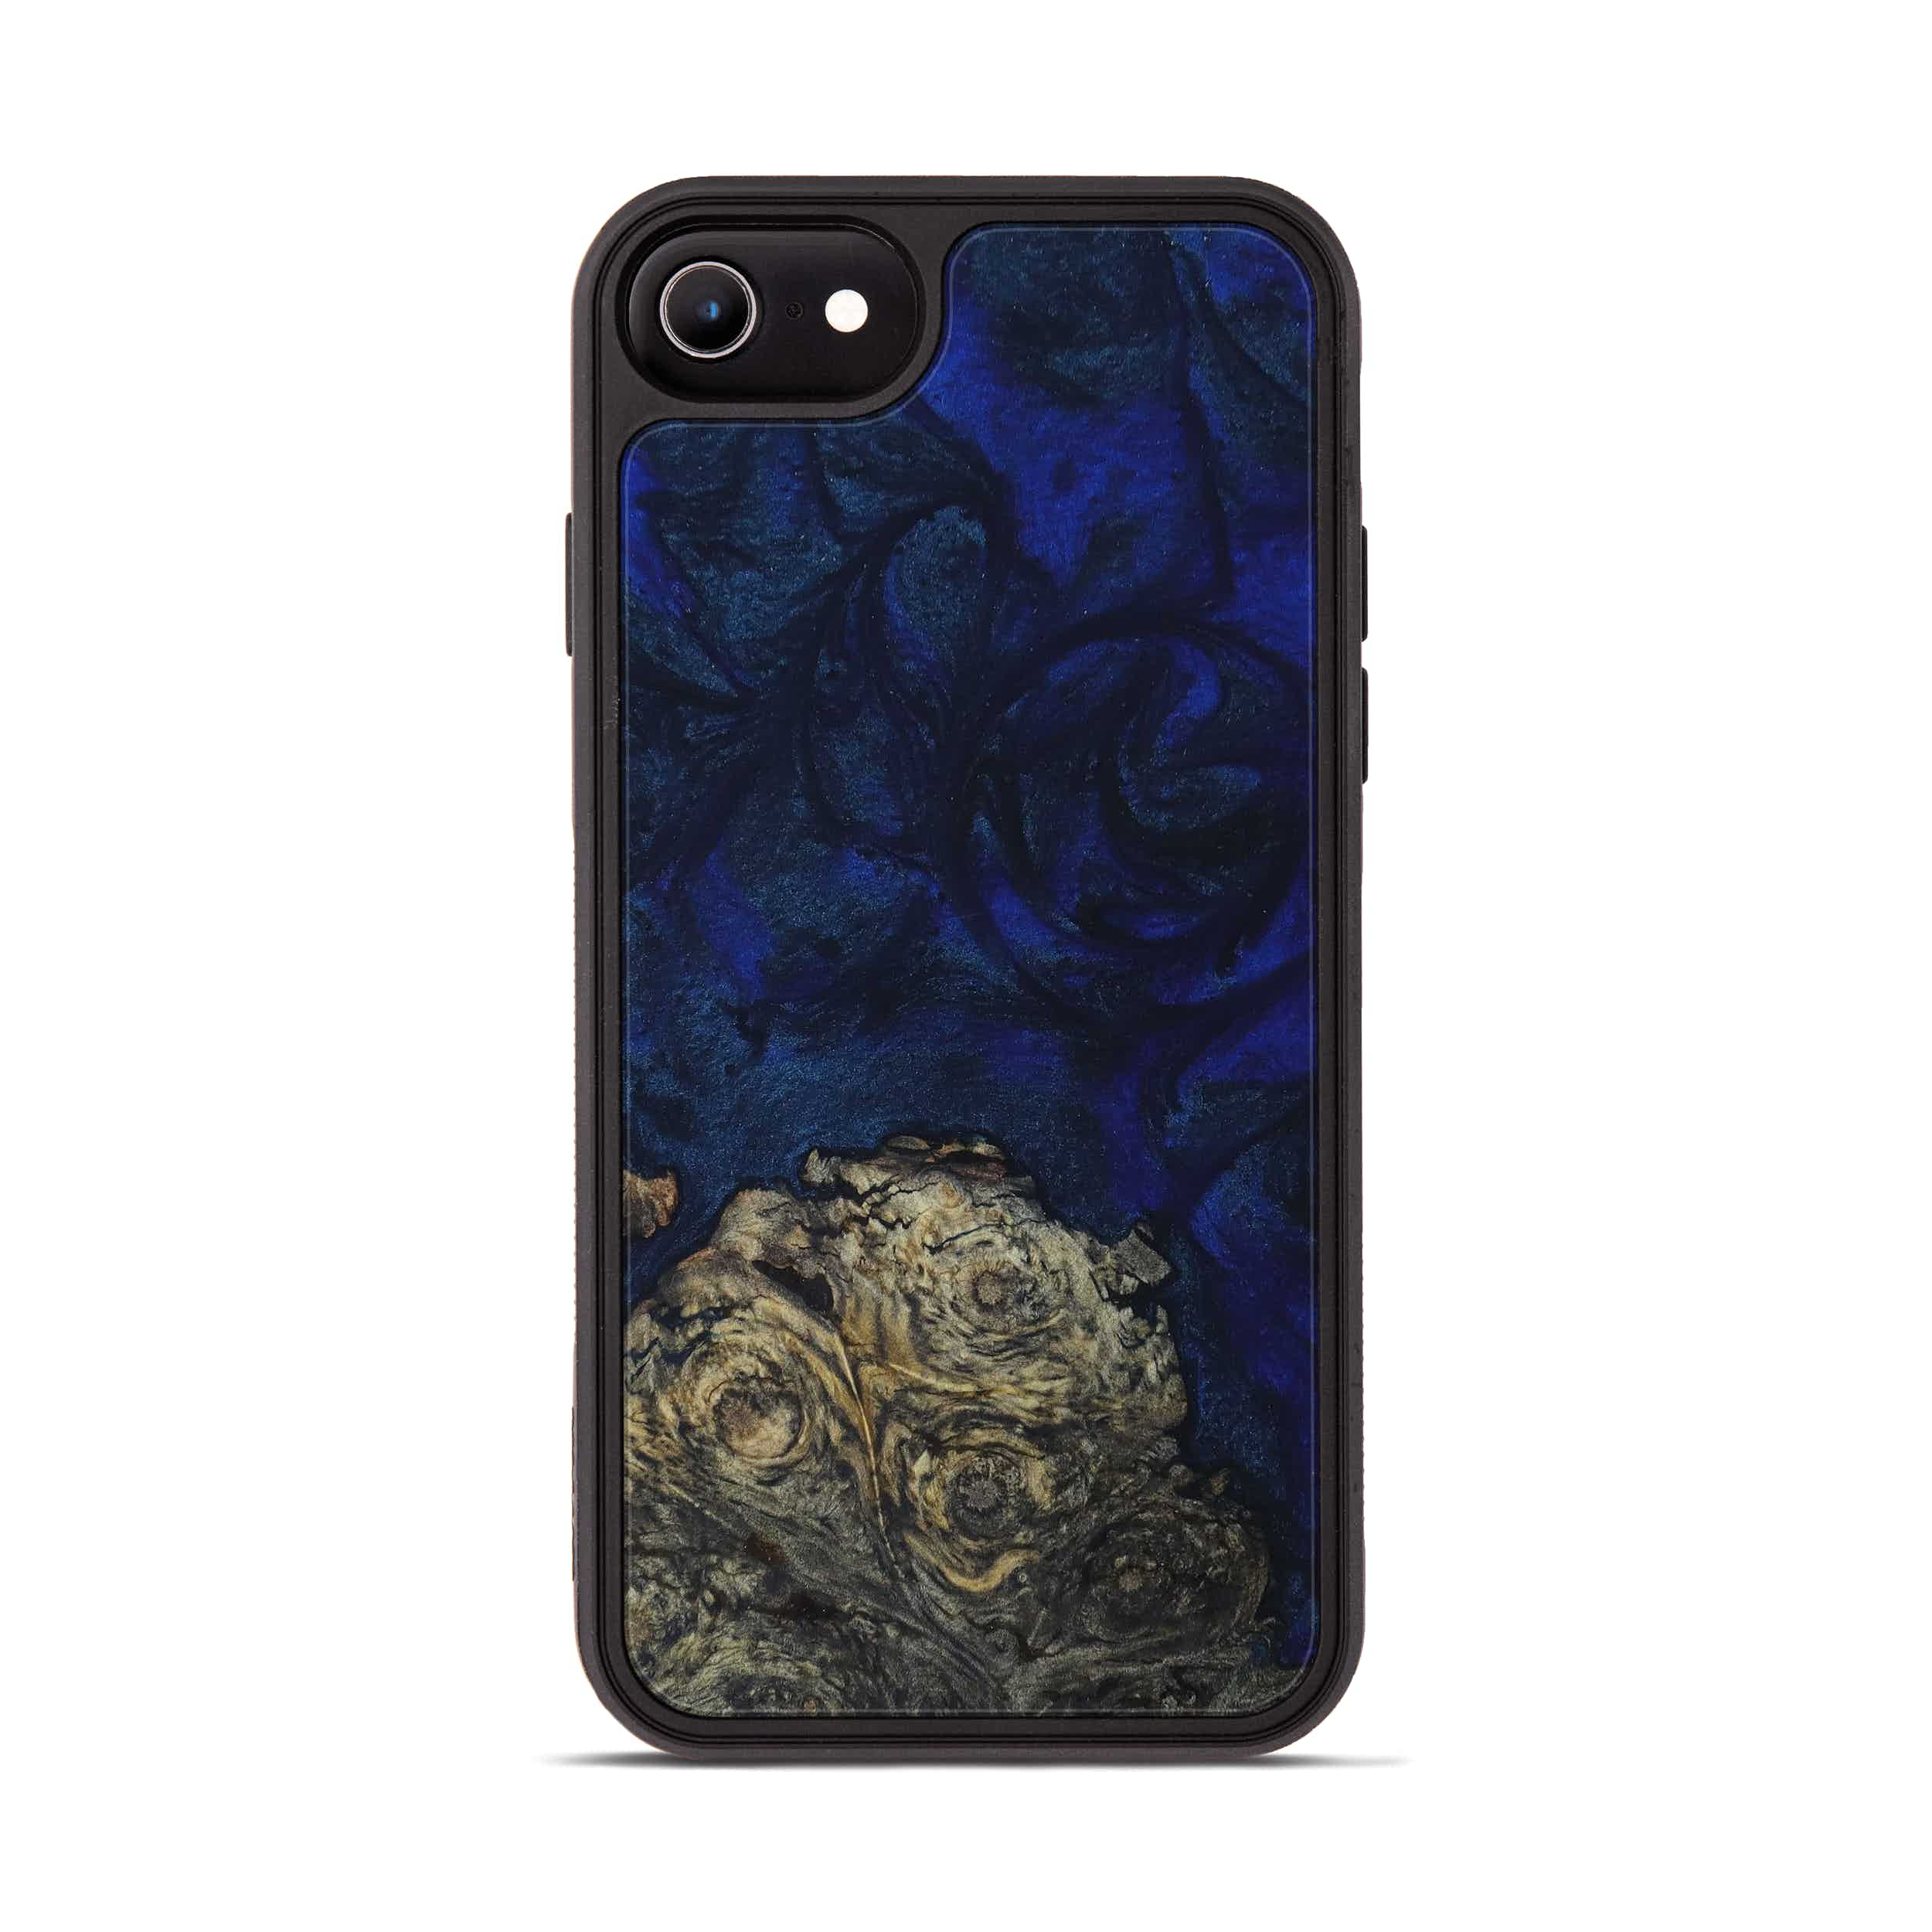 iPhone 6s Wood+Resin Phone Case - Leigha (Dark Blue, 397886)